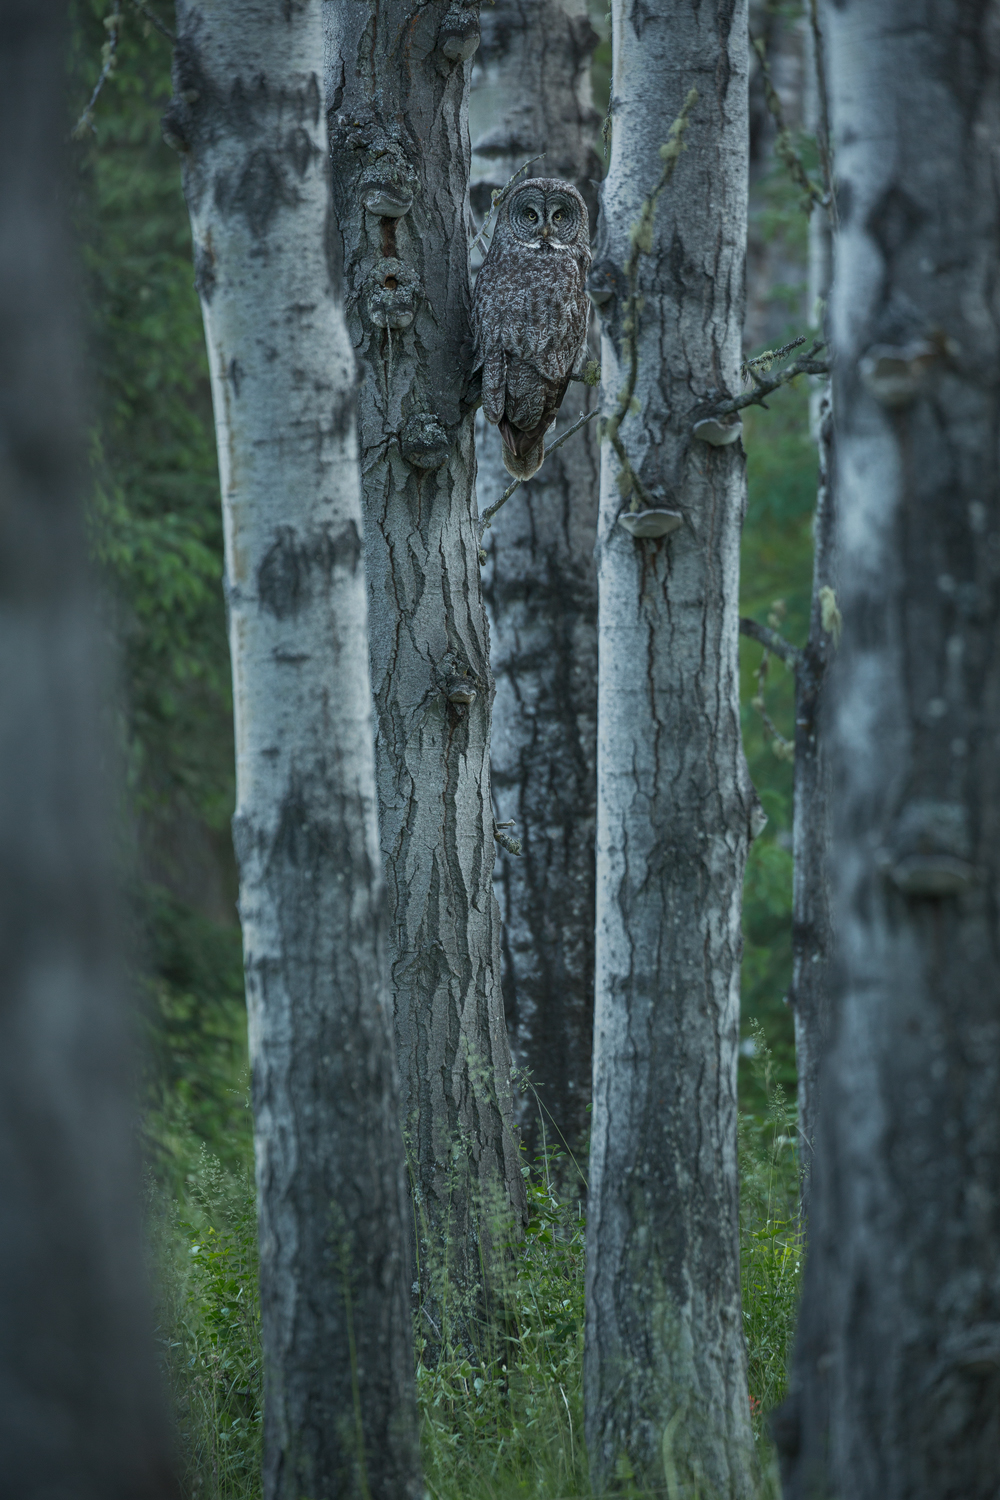 Hidden within her aspen domain, a female Great Grey Owl awaits the return of her mate as dusk sets in over the forest.